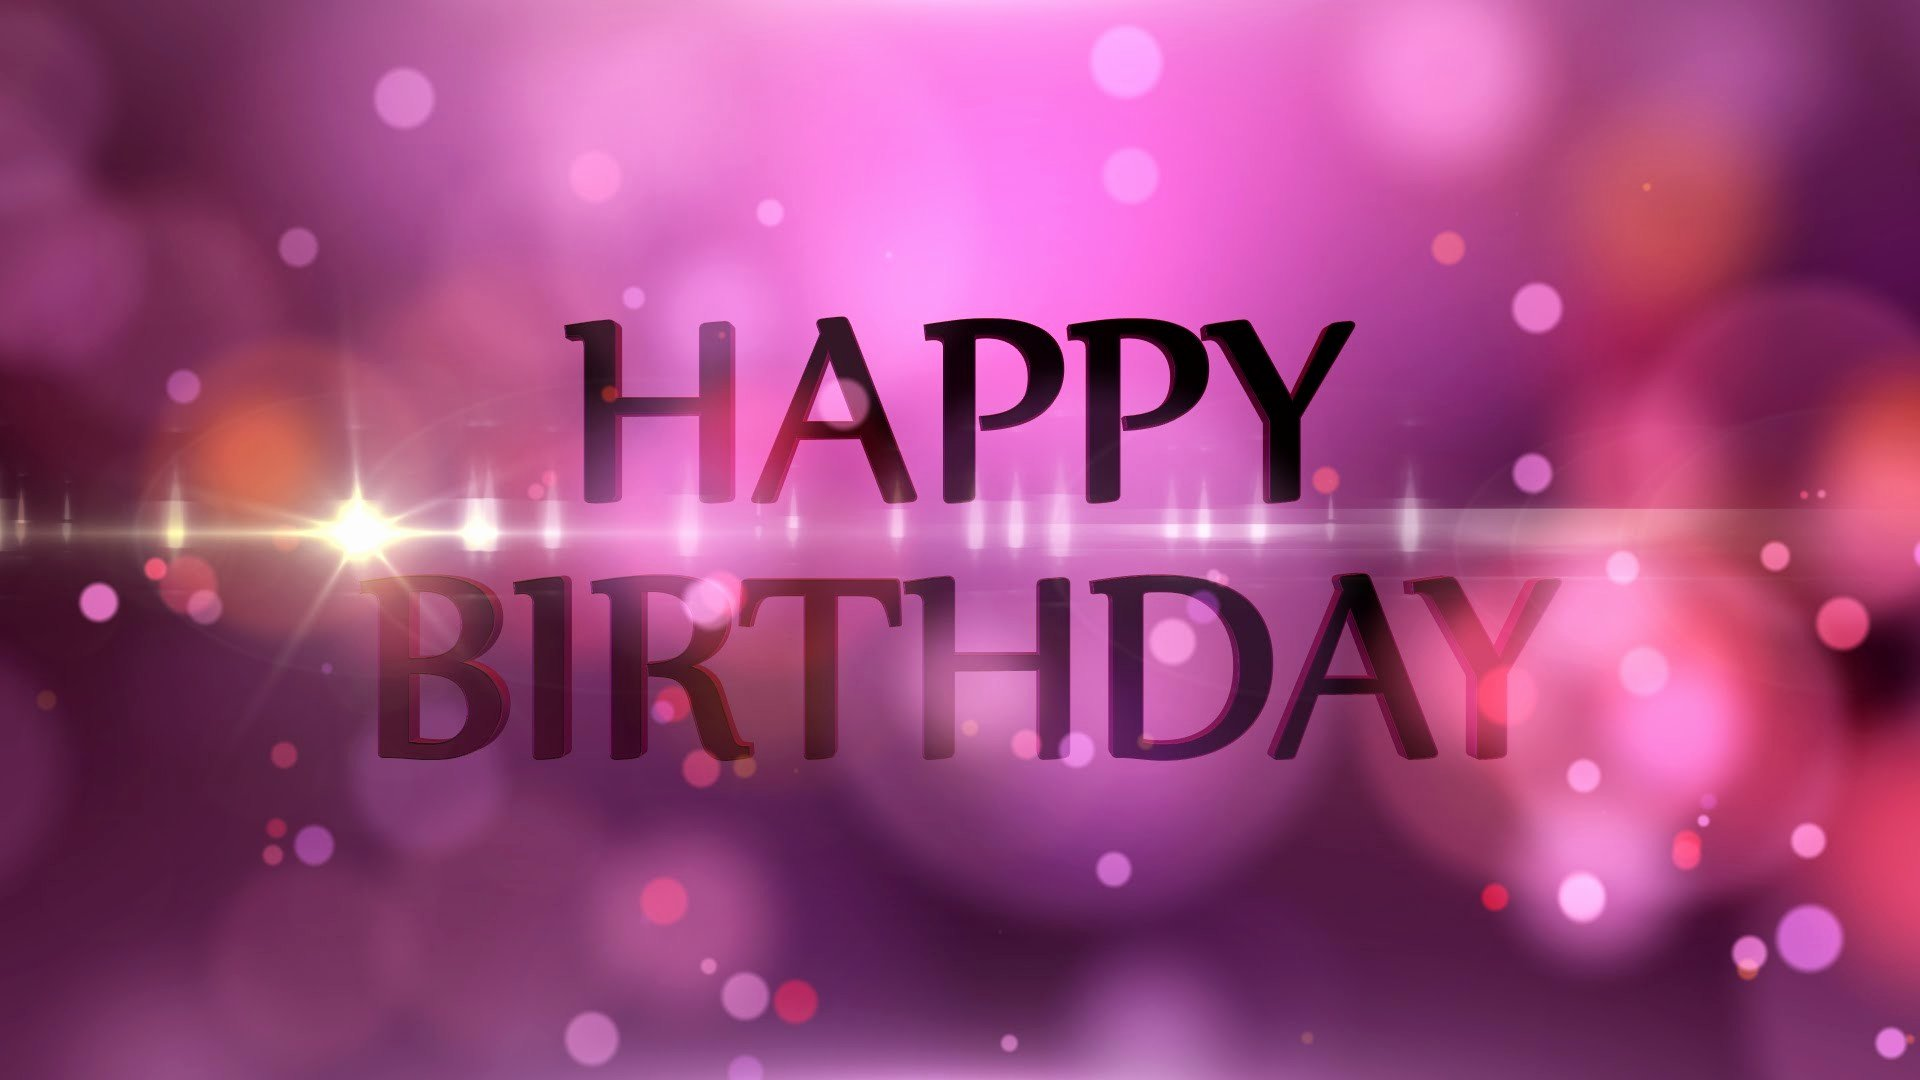 Happy Birthday Background Images New Happy Birthday Background ·① Wallpapertag